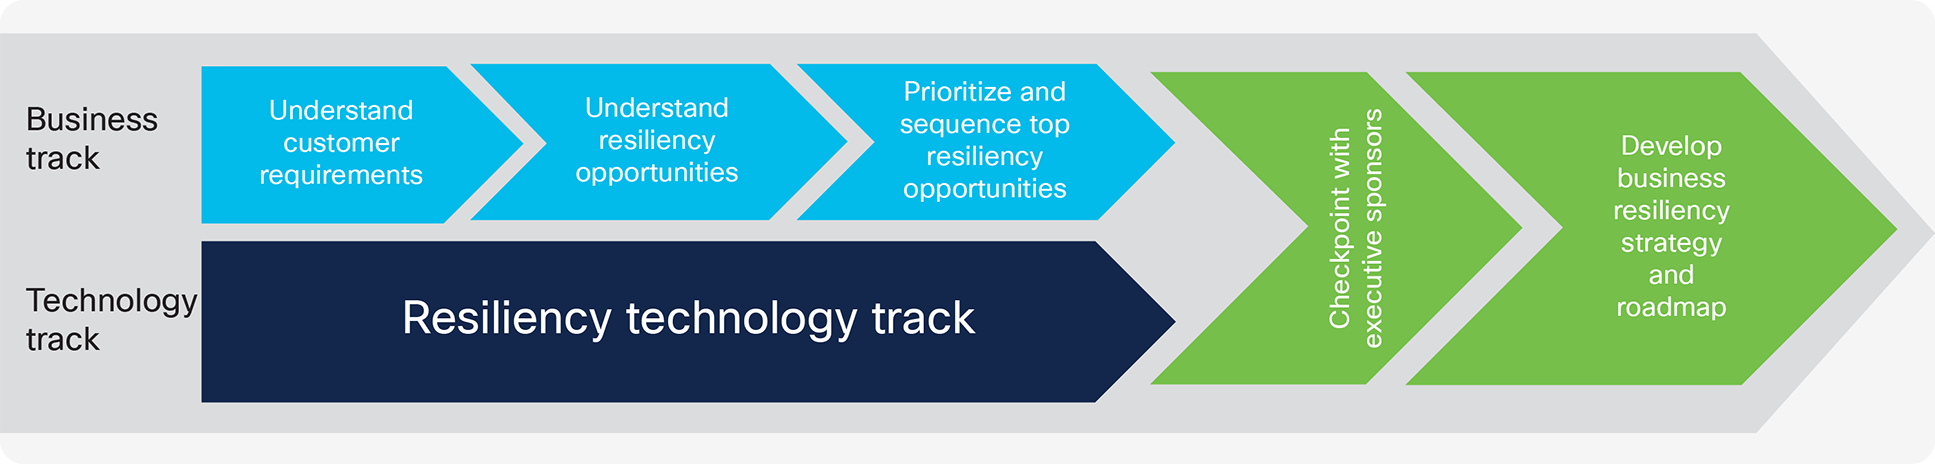 CX offer for Business Resiliency Strategy and Roadmap Technology Track